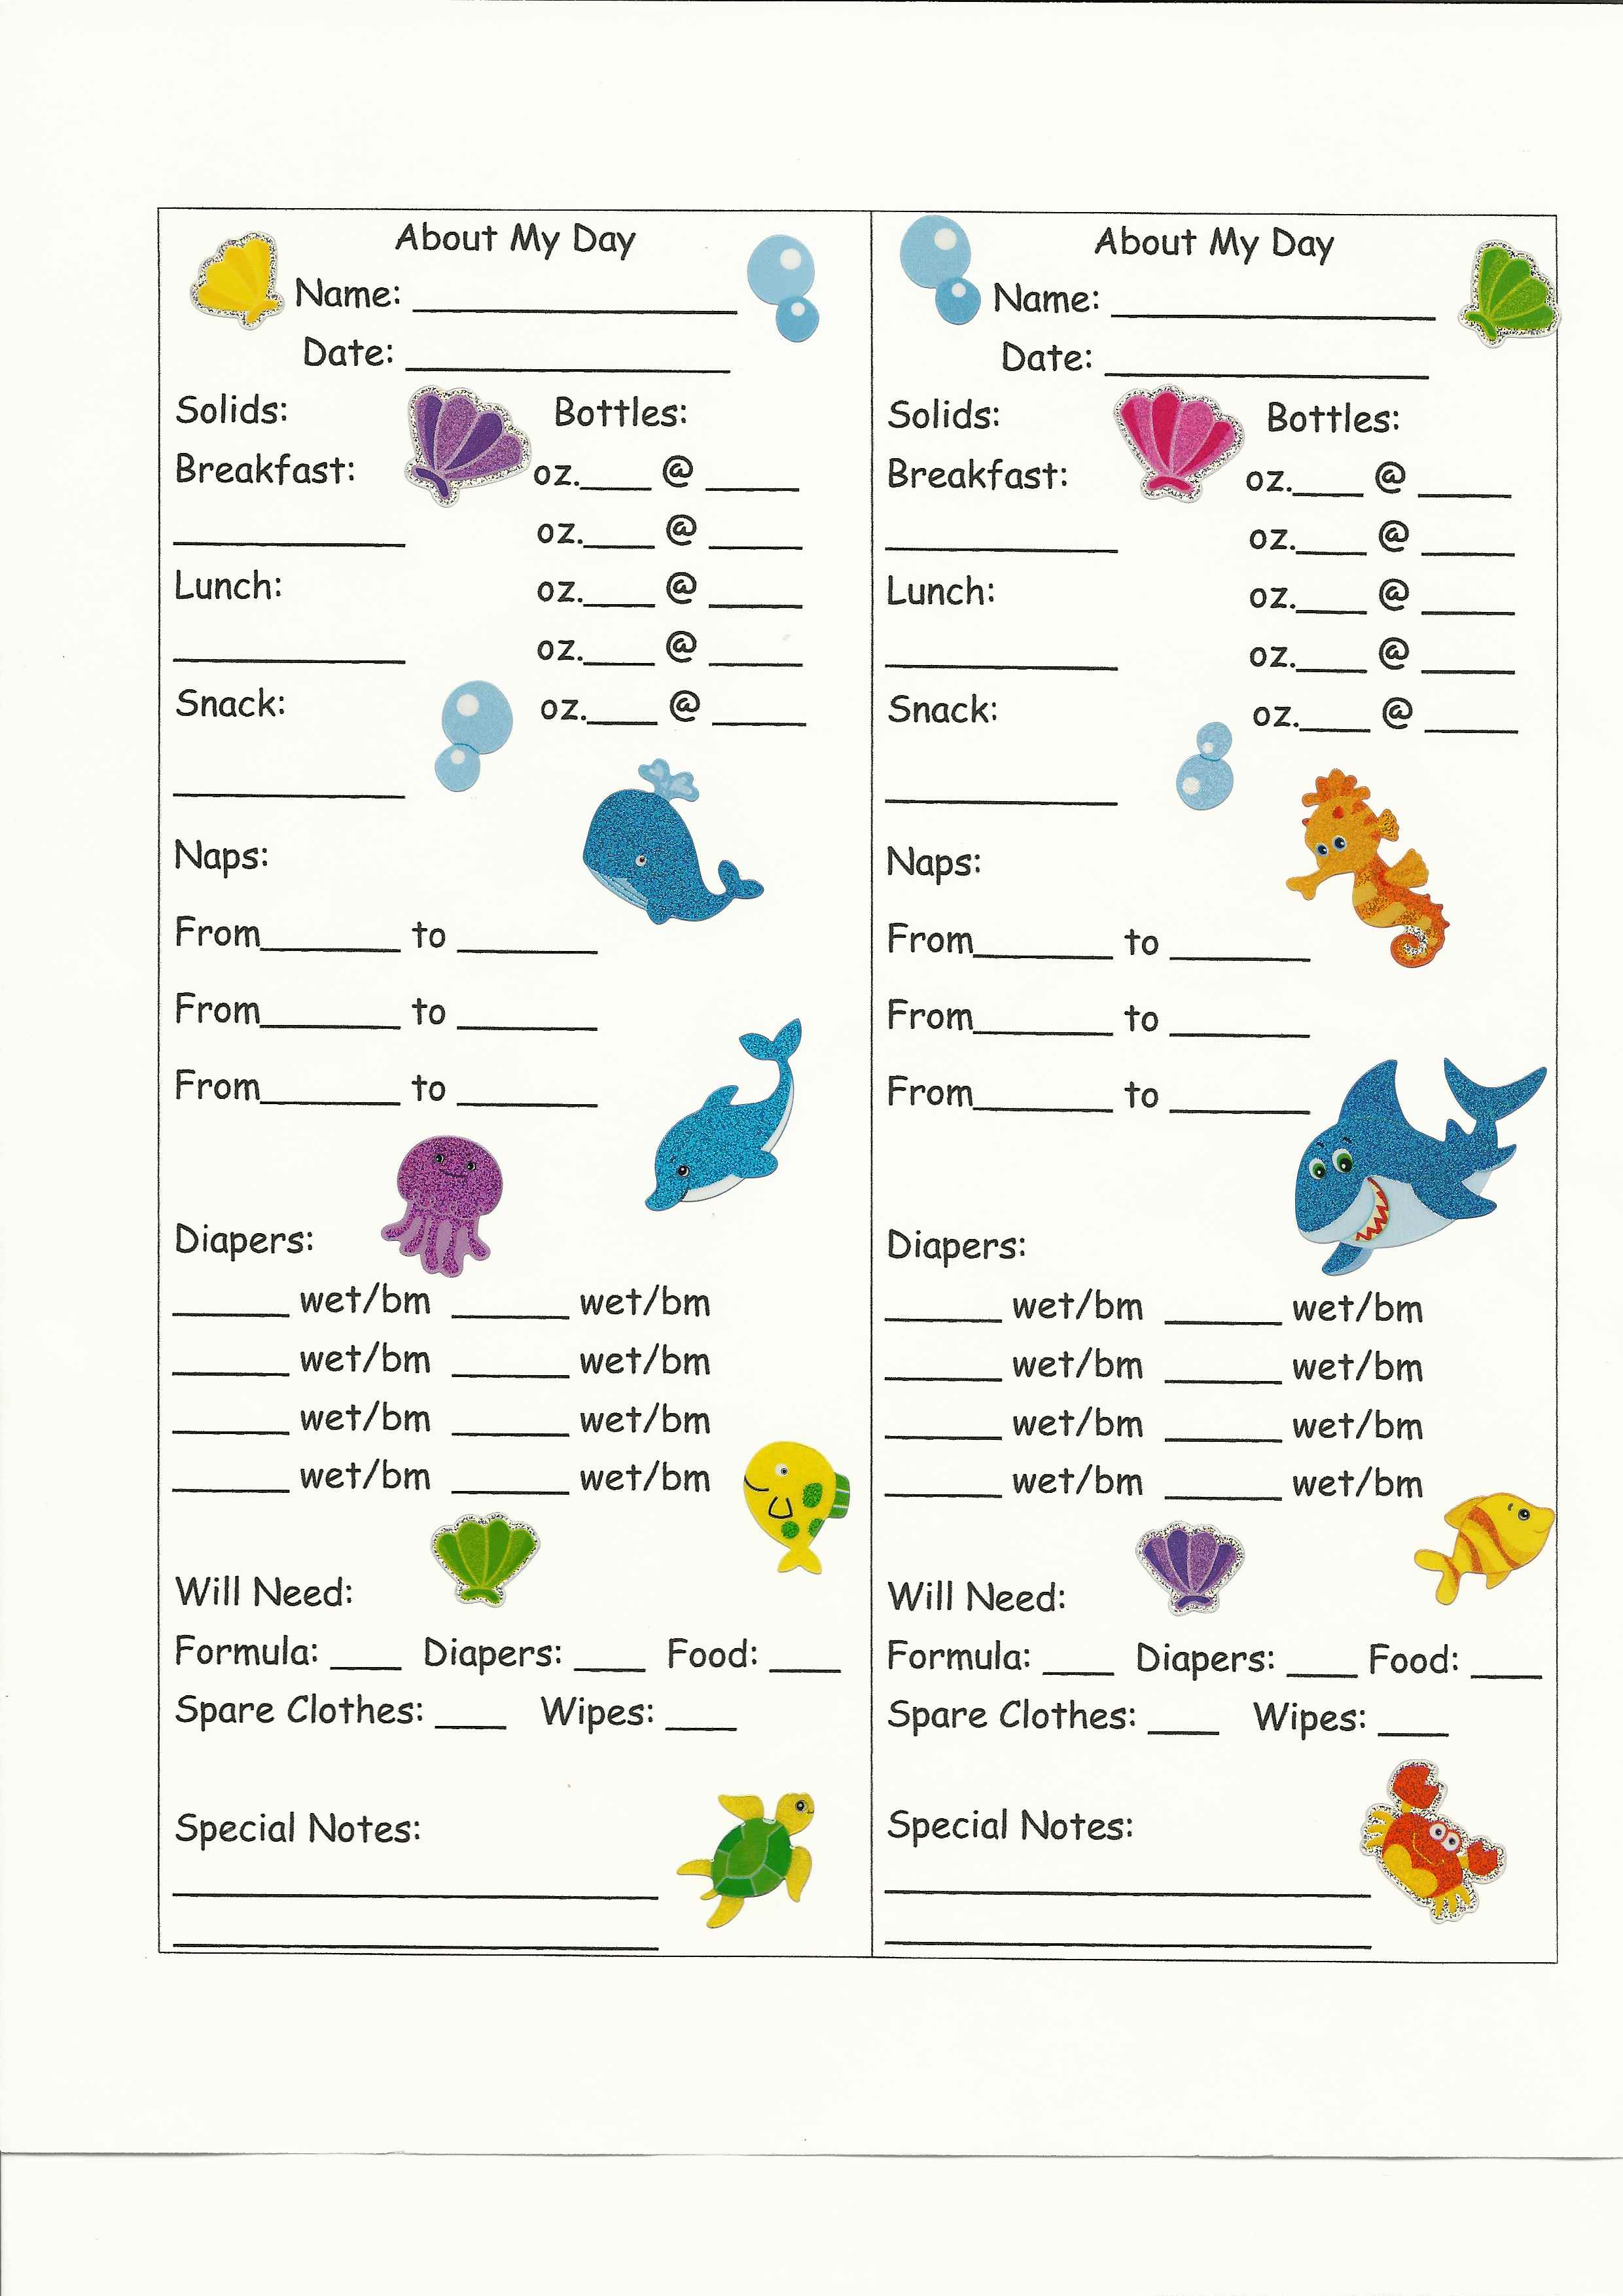 Infant Toddler Daily Report Sheet